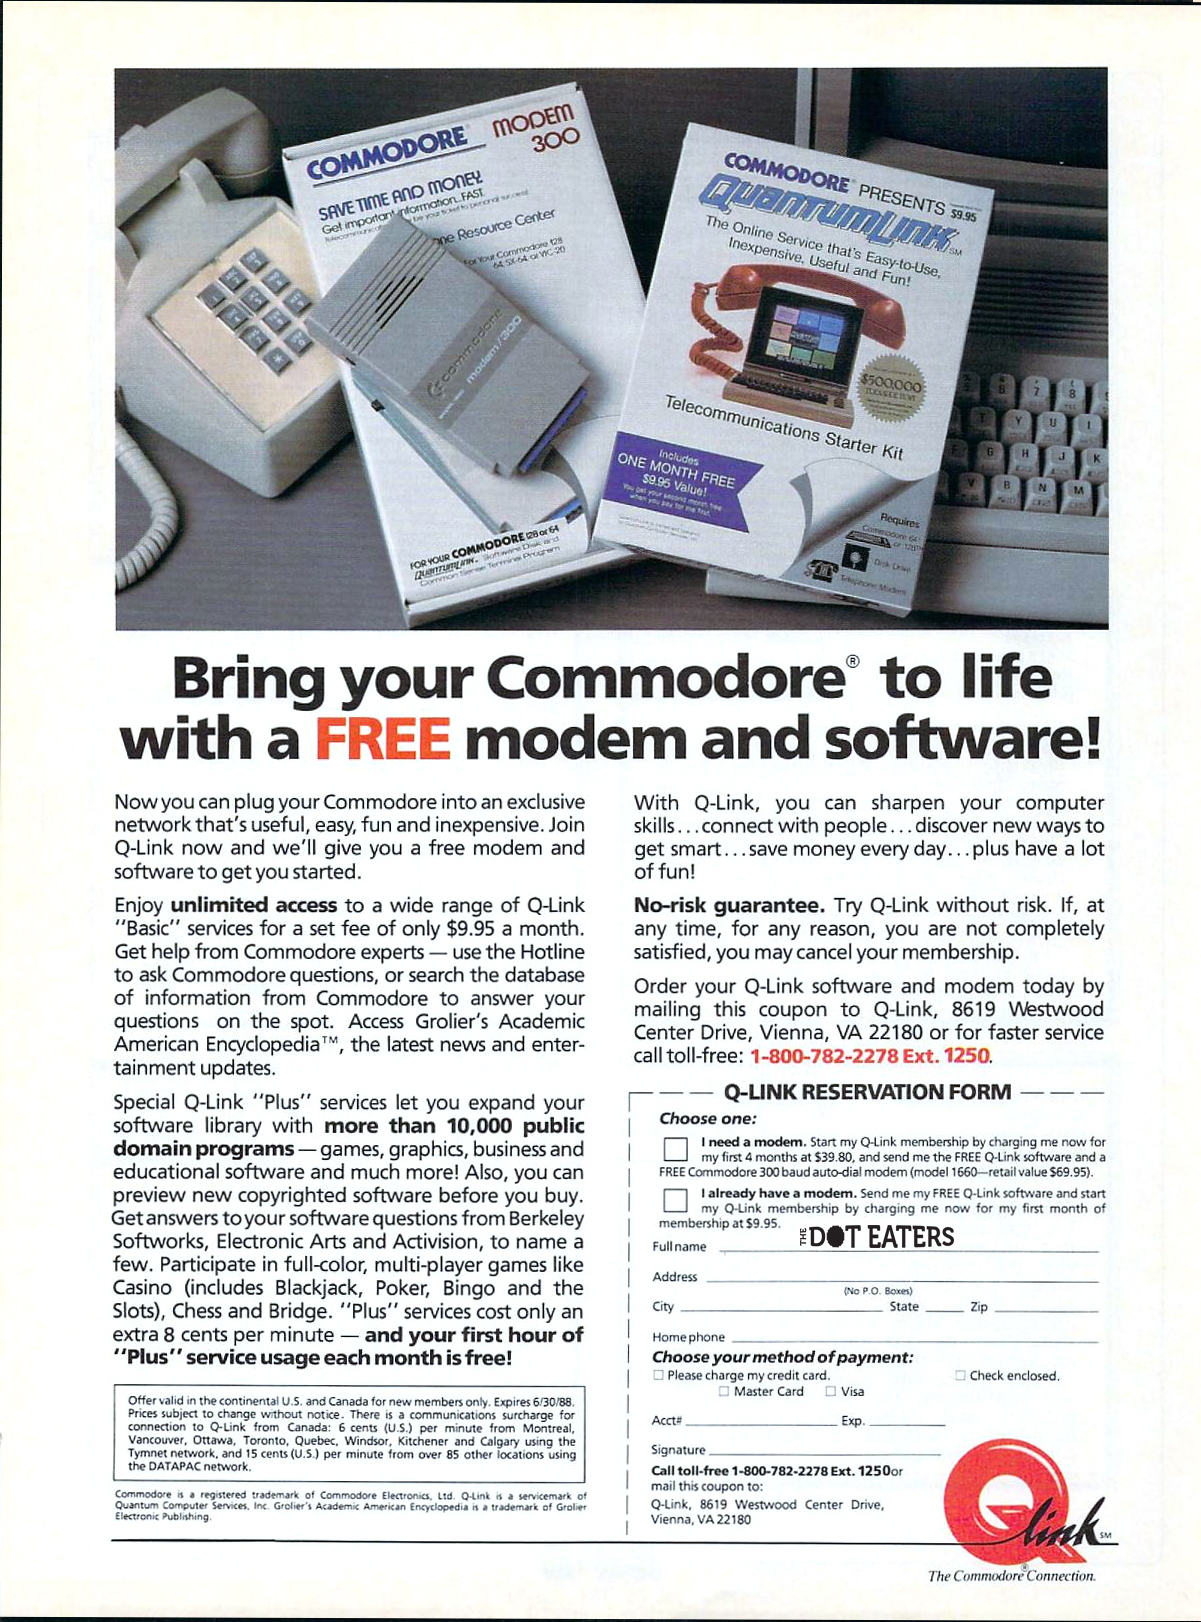 Ad for QuantumLink, an online serivce for the Commodore 64 computer